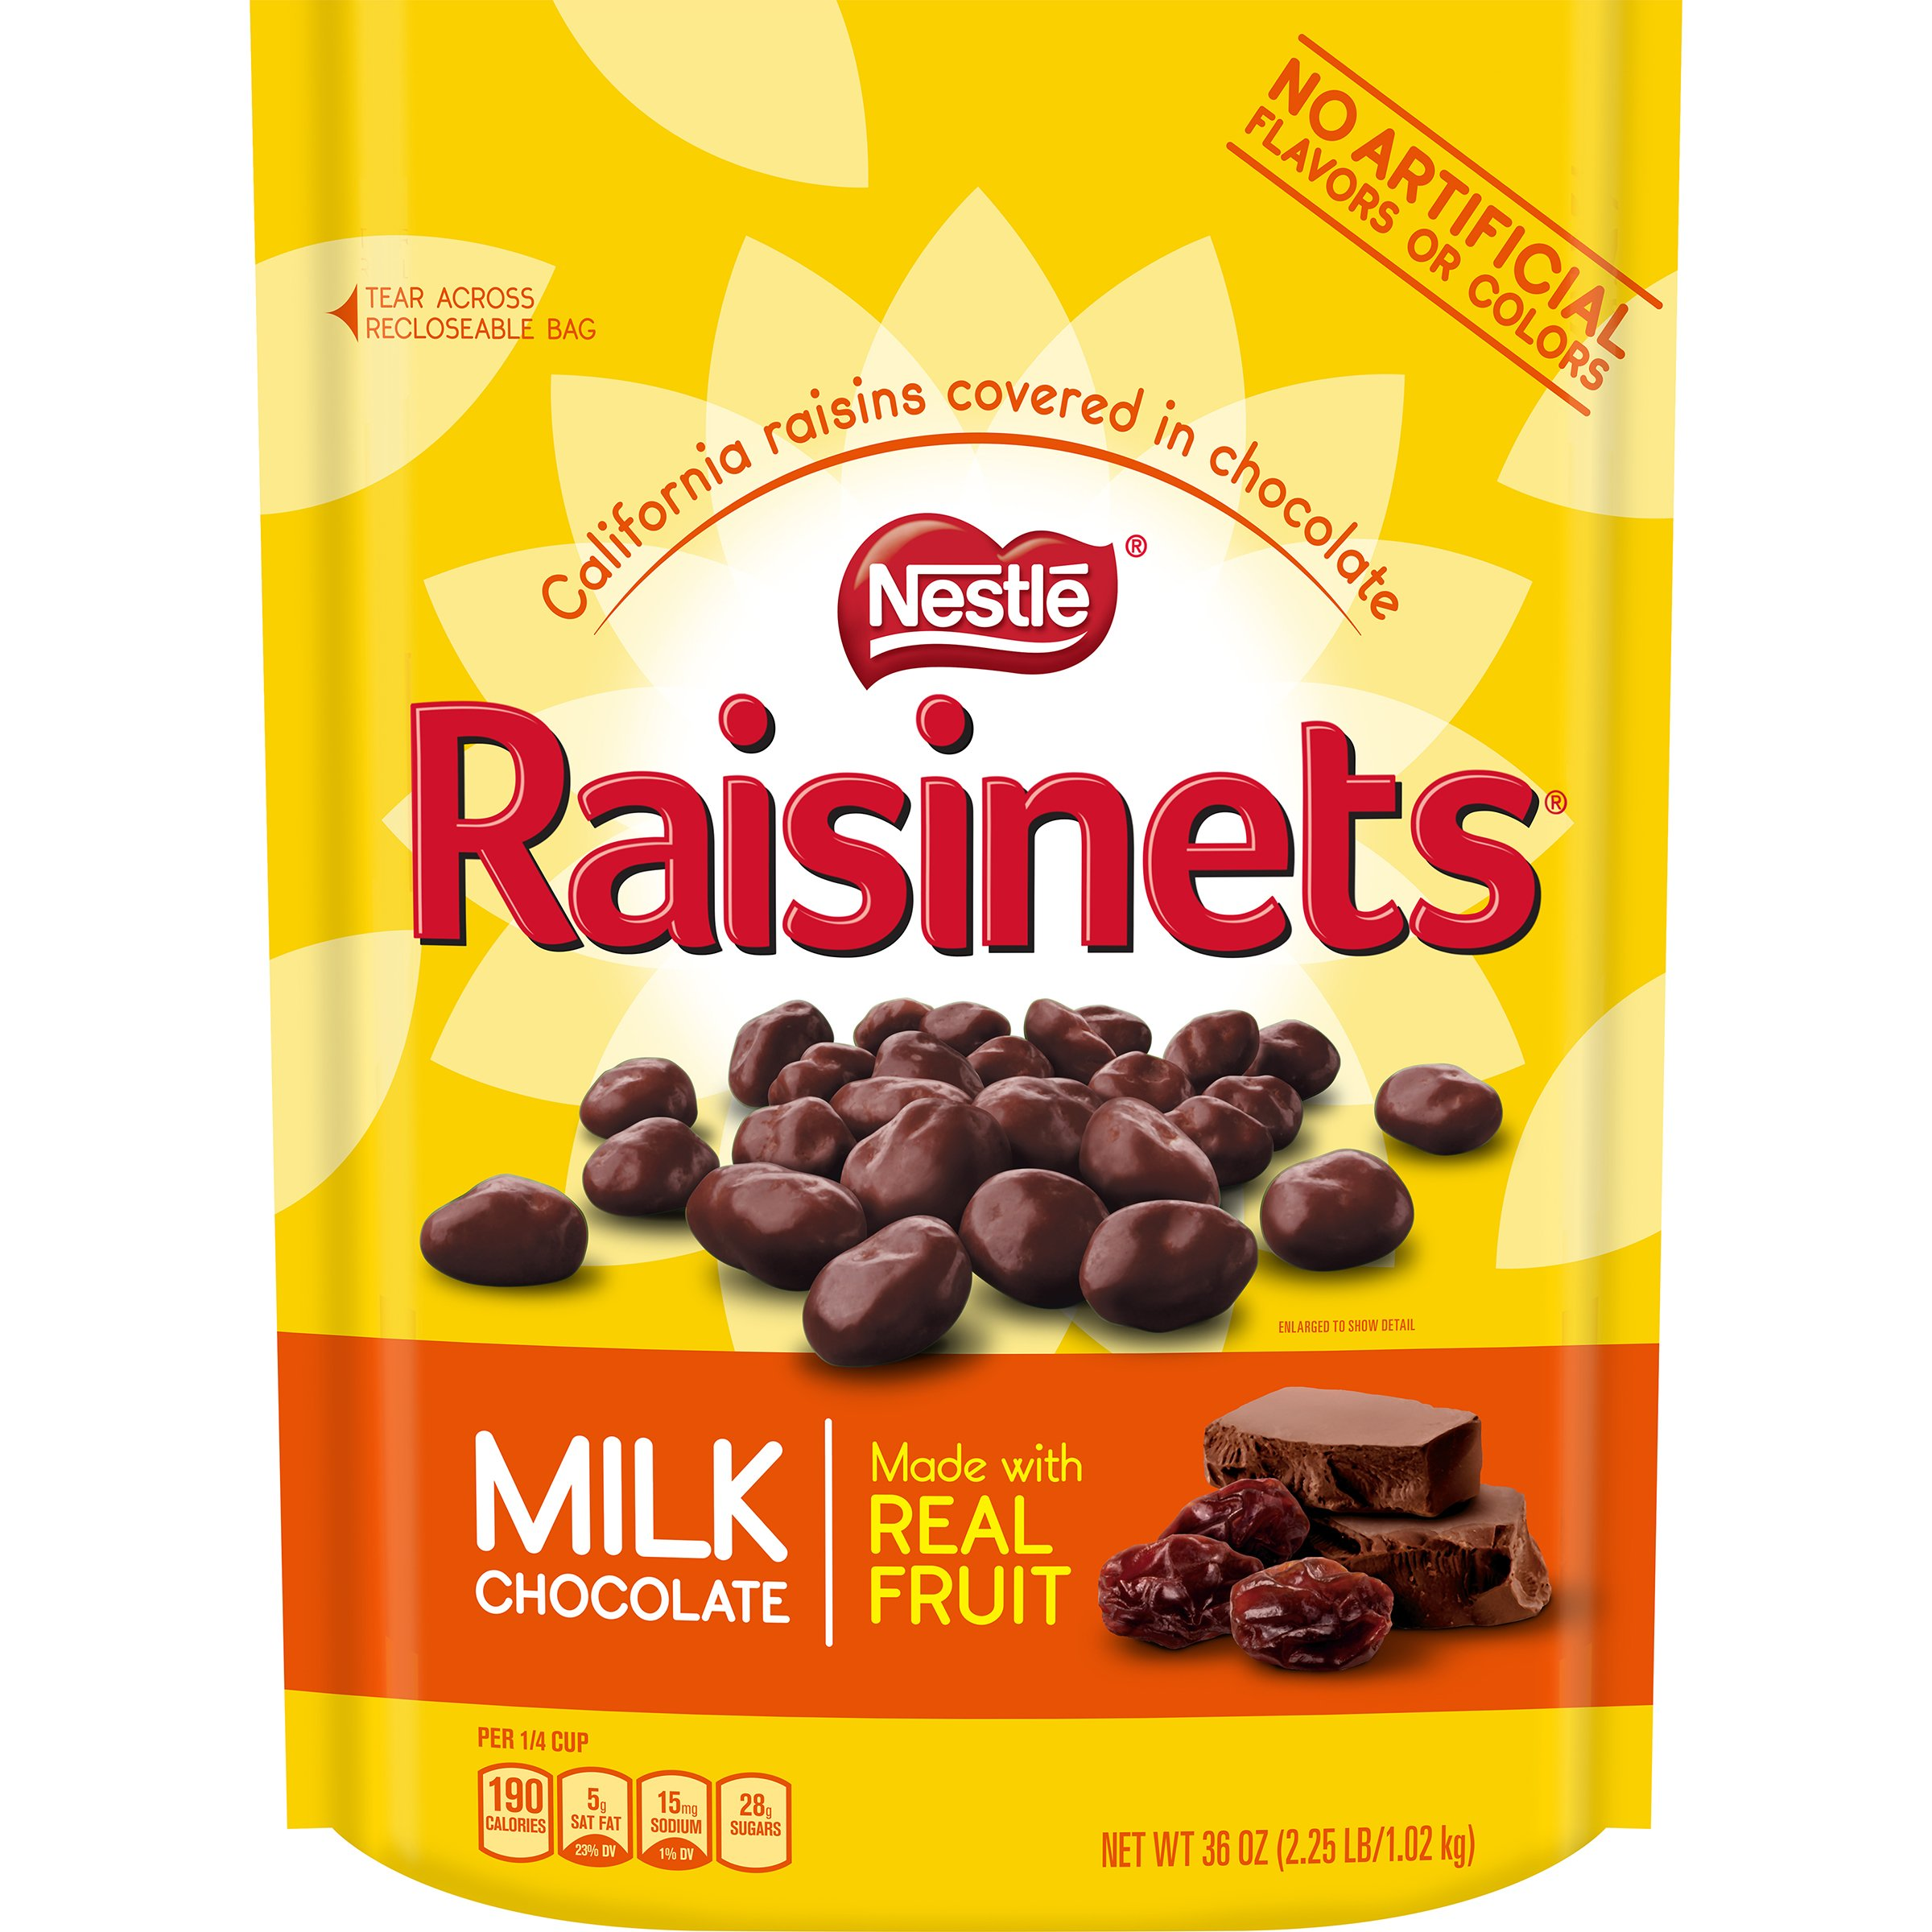 Raisinets Milk Chocolate Covered Raisin Candy, Large Resealable Bag, 36 Ounce by Raisinets